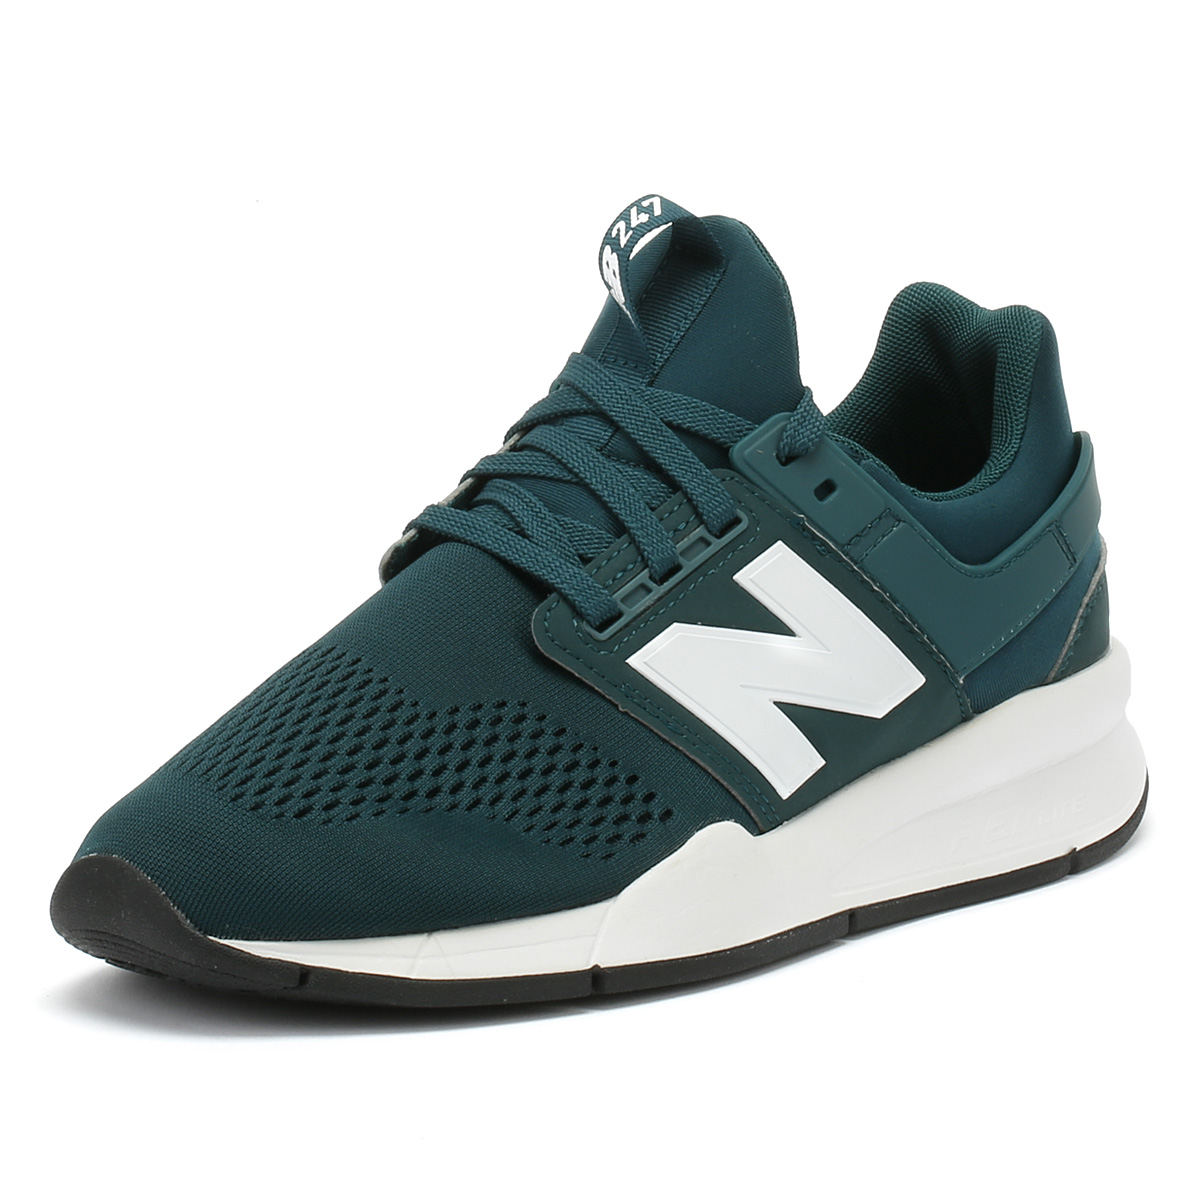 06df9d940c Details about New Balance Mens Trainers 247 Deep Jade Green & White Sport  Casual Running Shoes